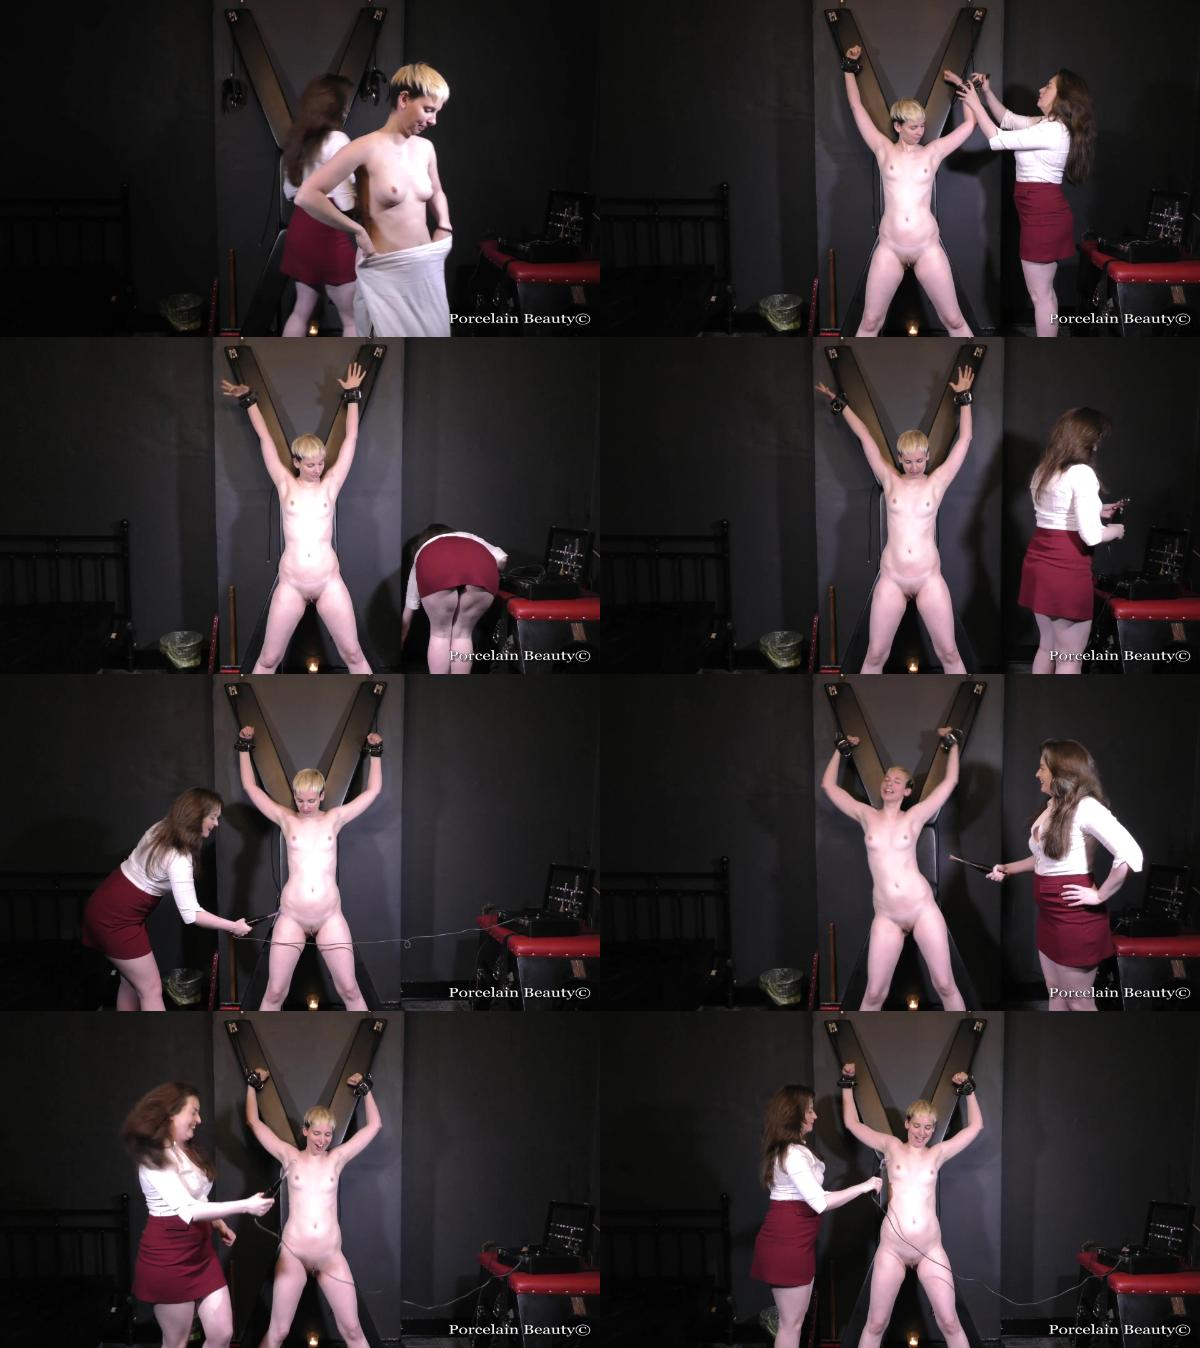 Electro Torture for Bound Slave Girl Porcelain Beauty 1080p